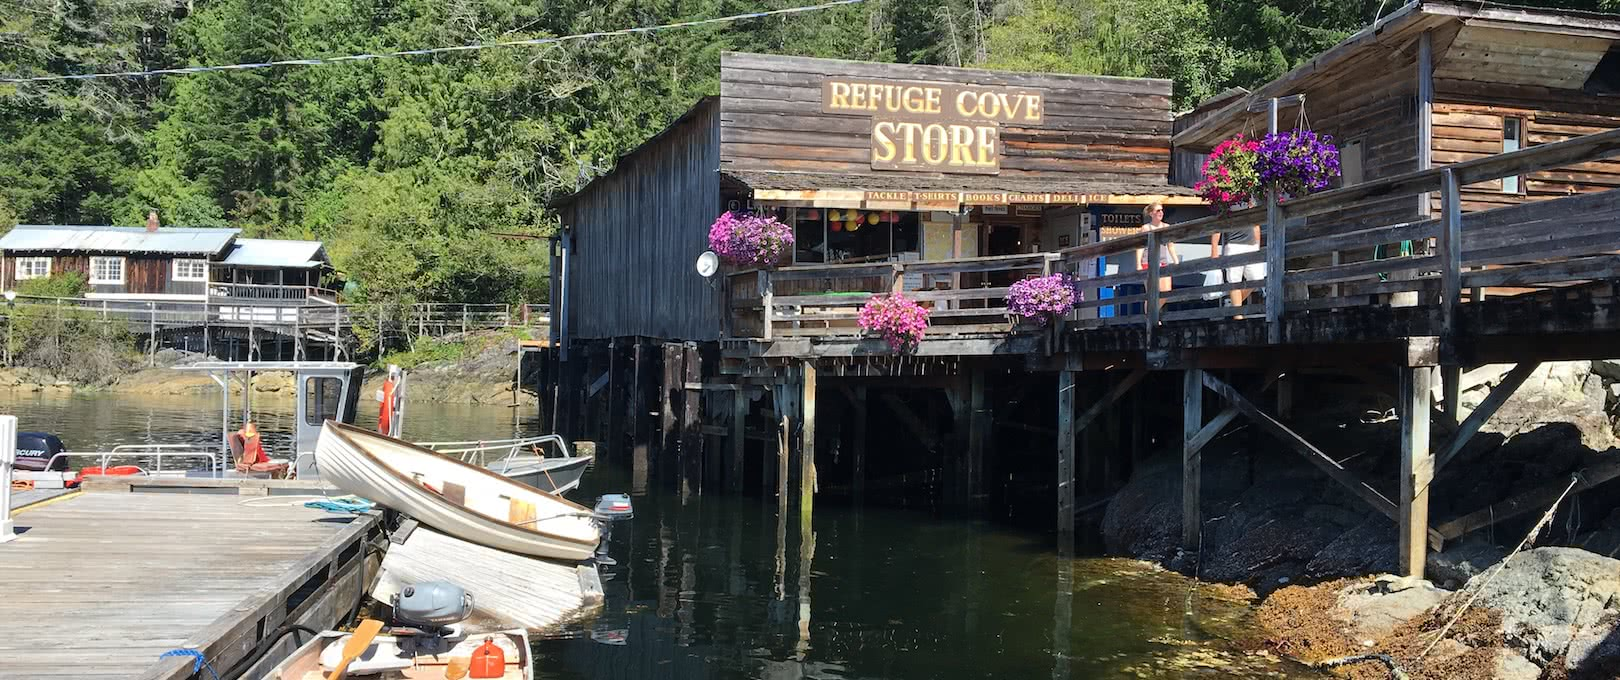 Refuge Cove Store in Desolation Sound, BC